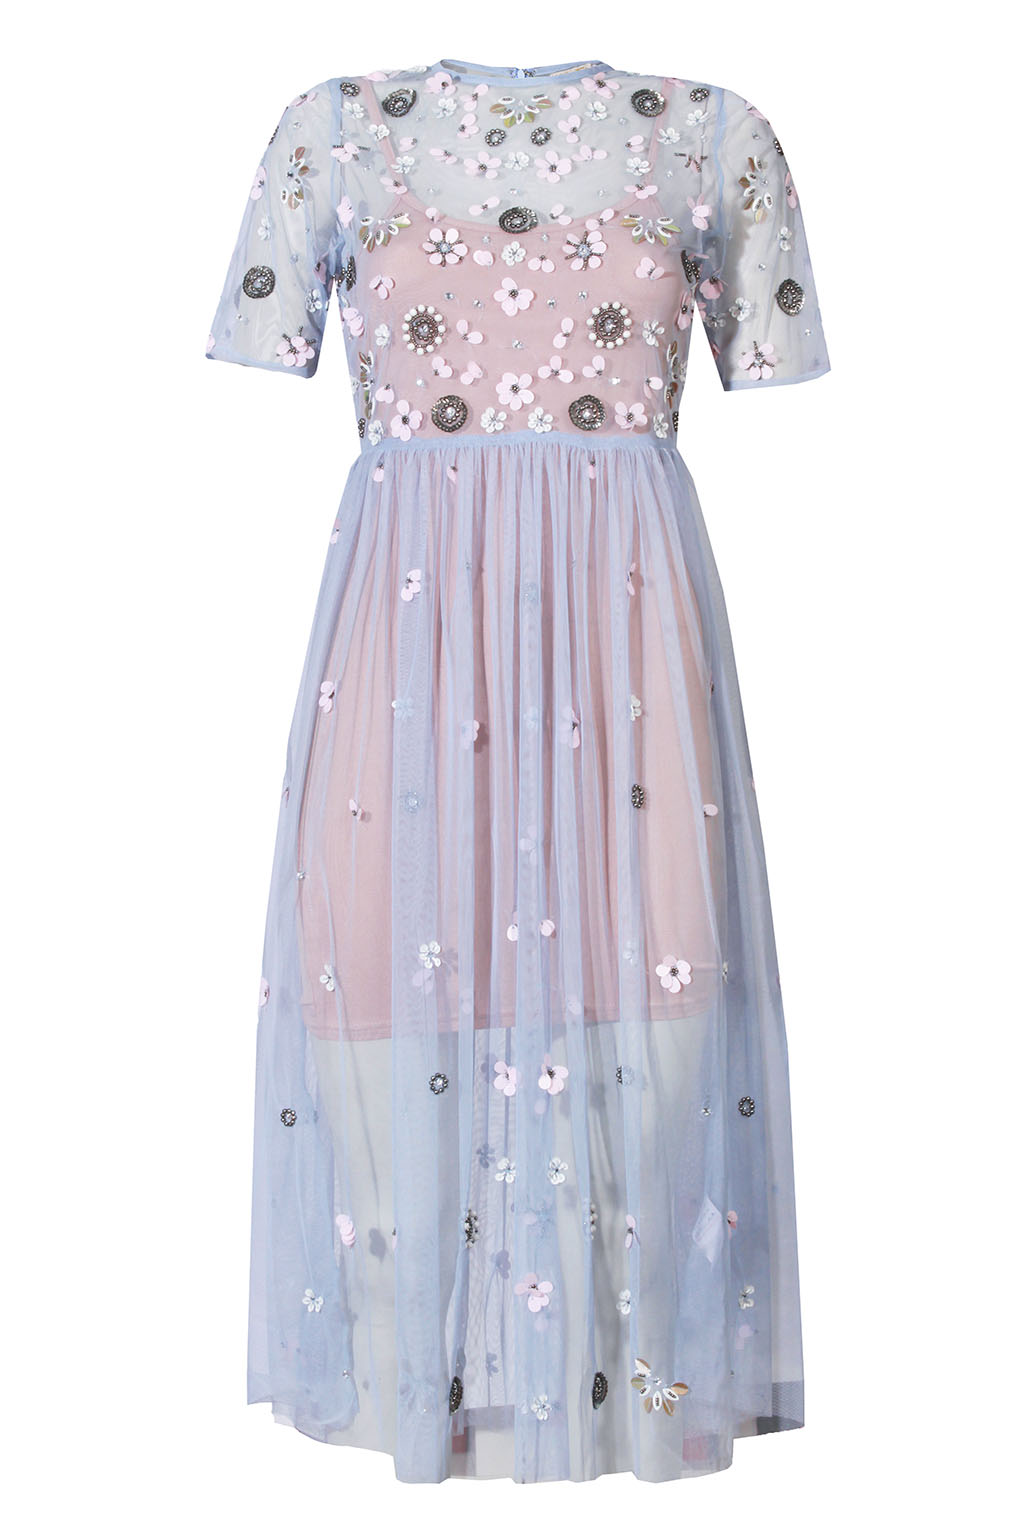 Image of Lace & Beads Baby Blue Sheer Dress